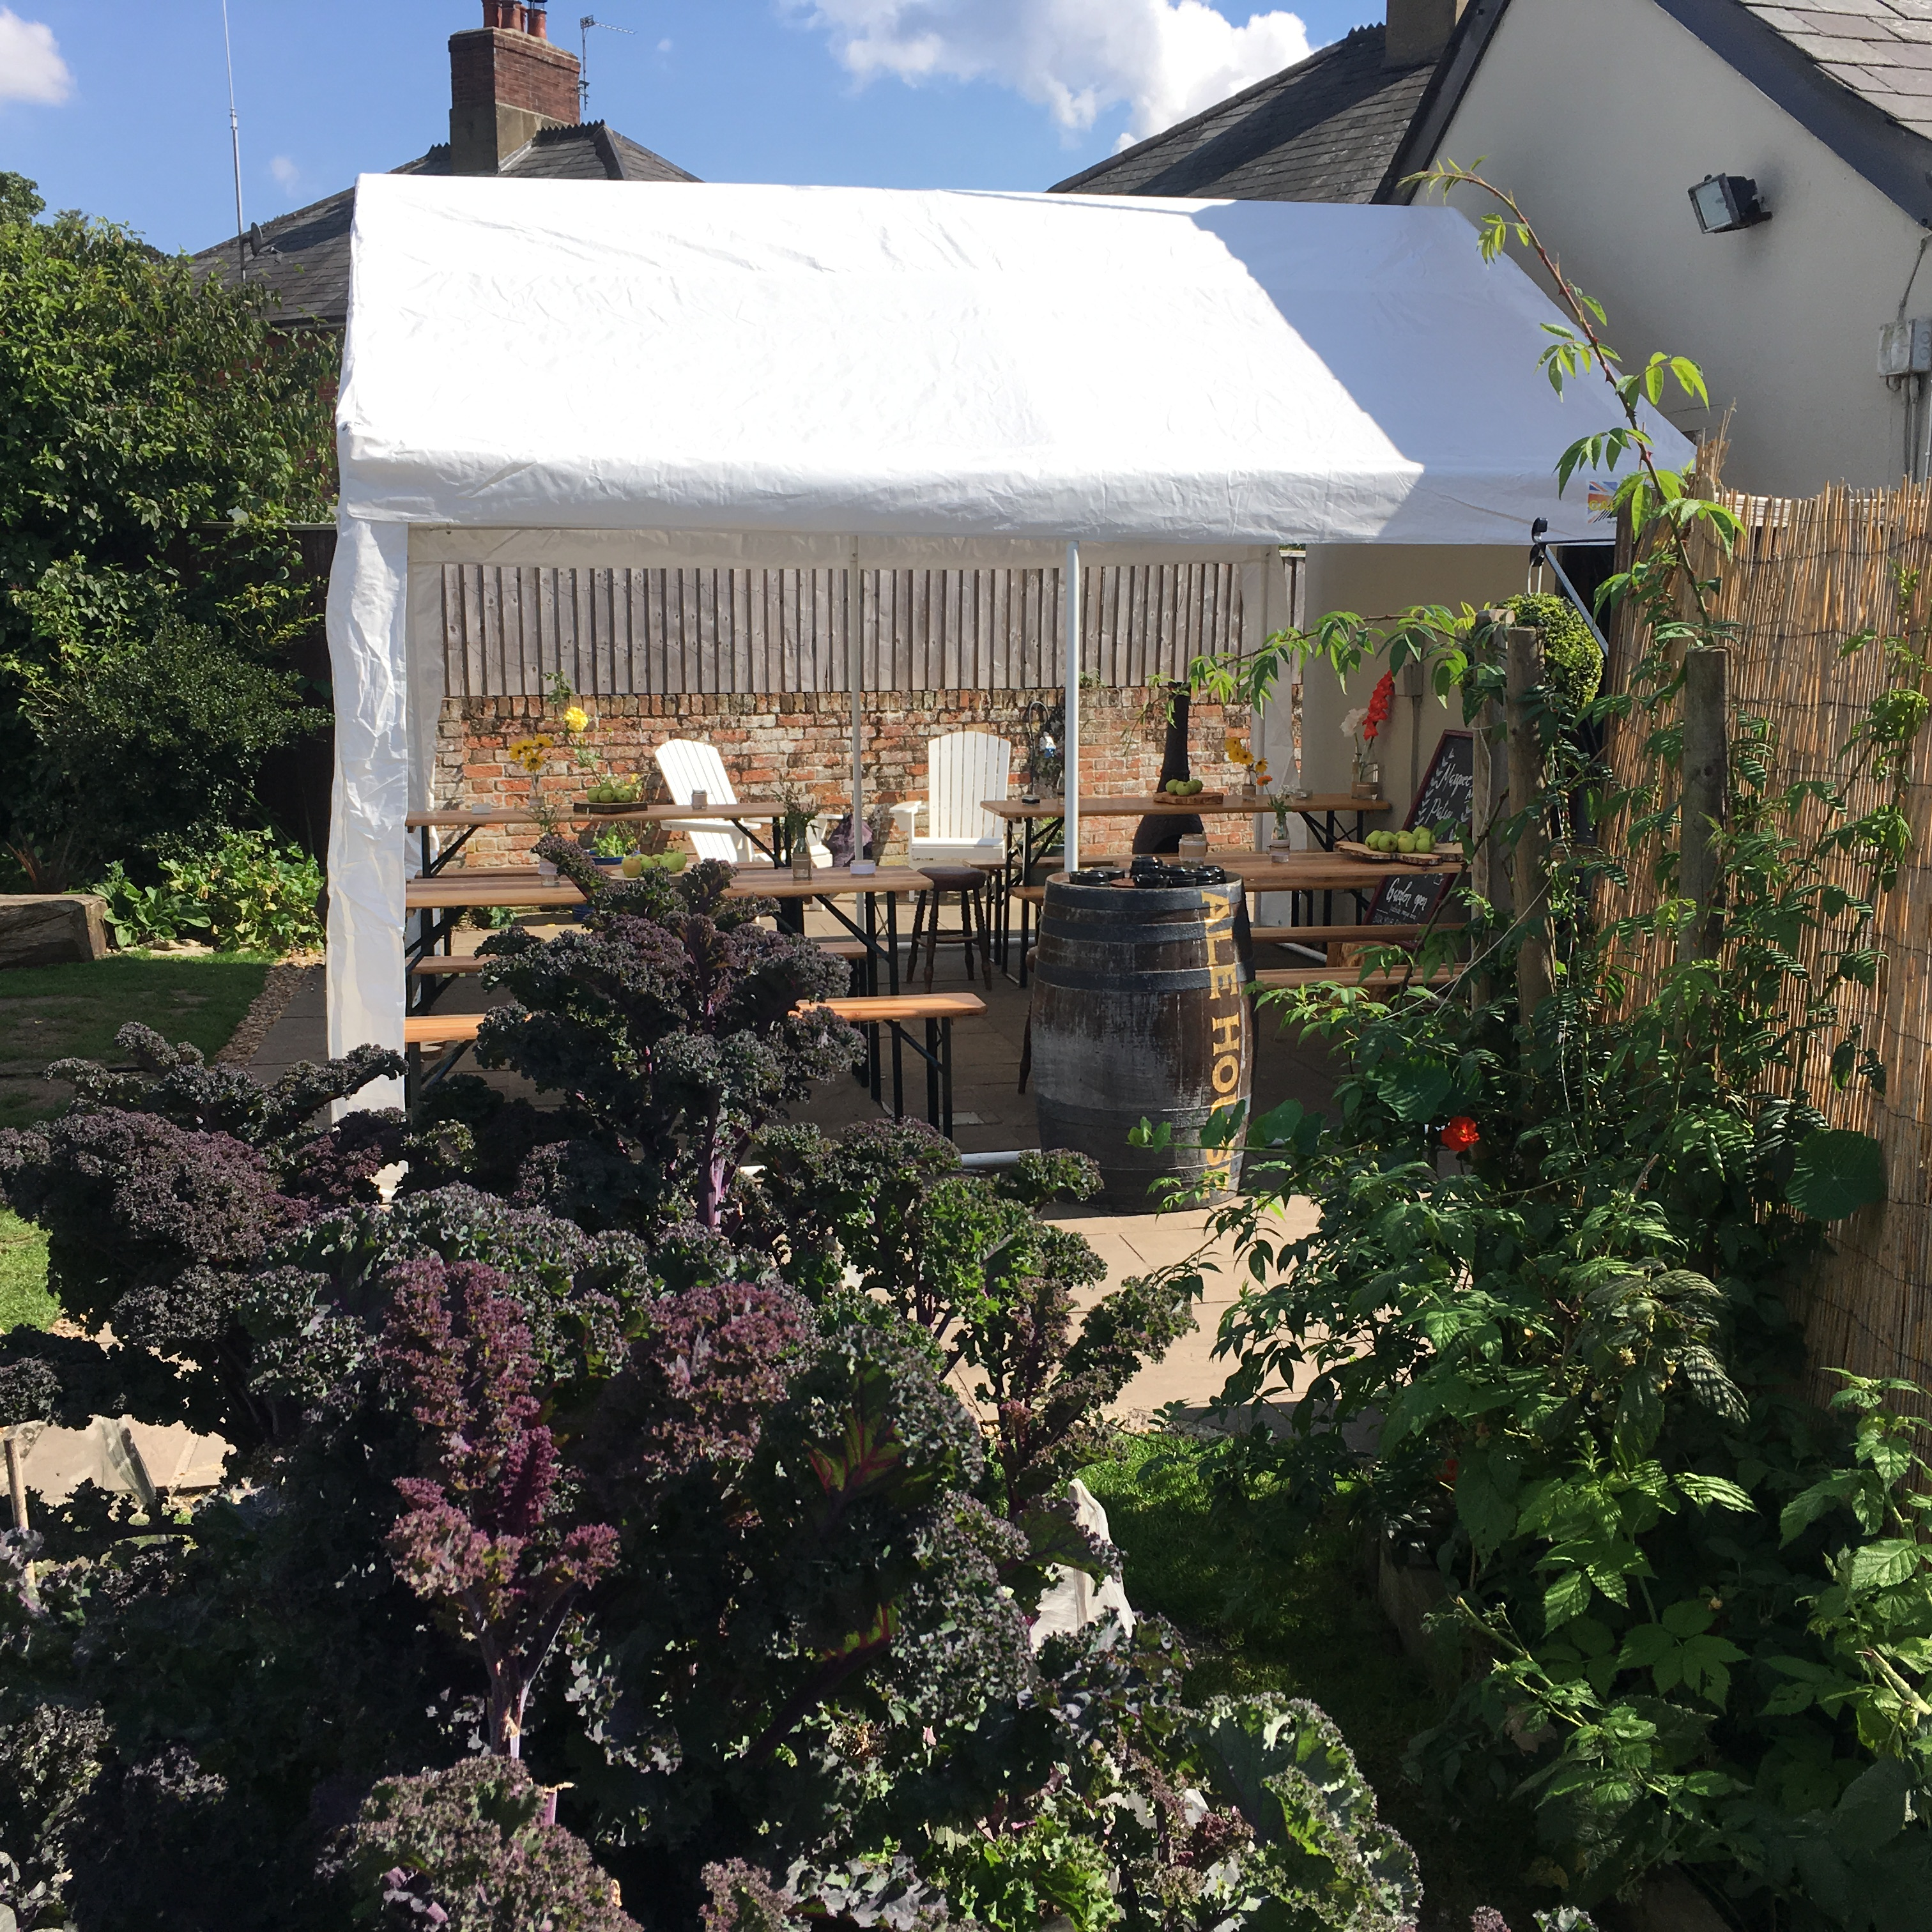 All weather Outdoor play area and beer tent- The Railway Craft Pub and Burger Joint